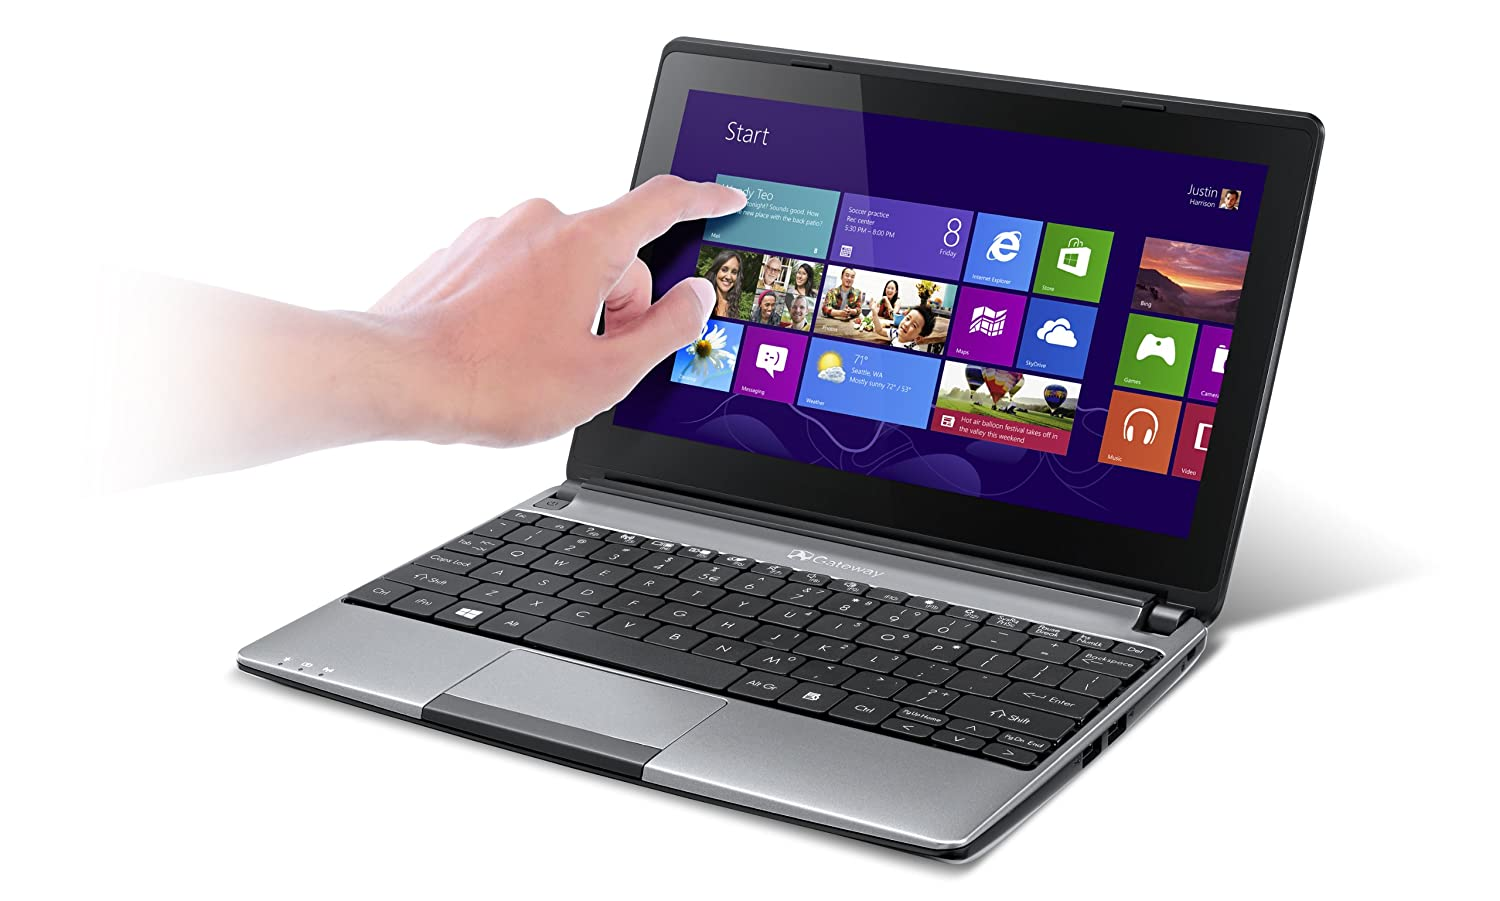 Gateway LT41P04u 10.1-Inch Touchscreen Laptop